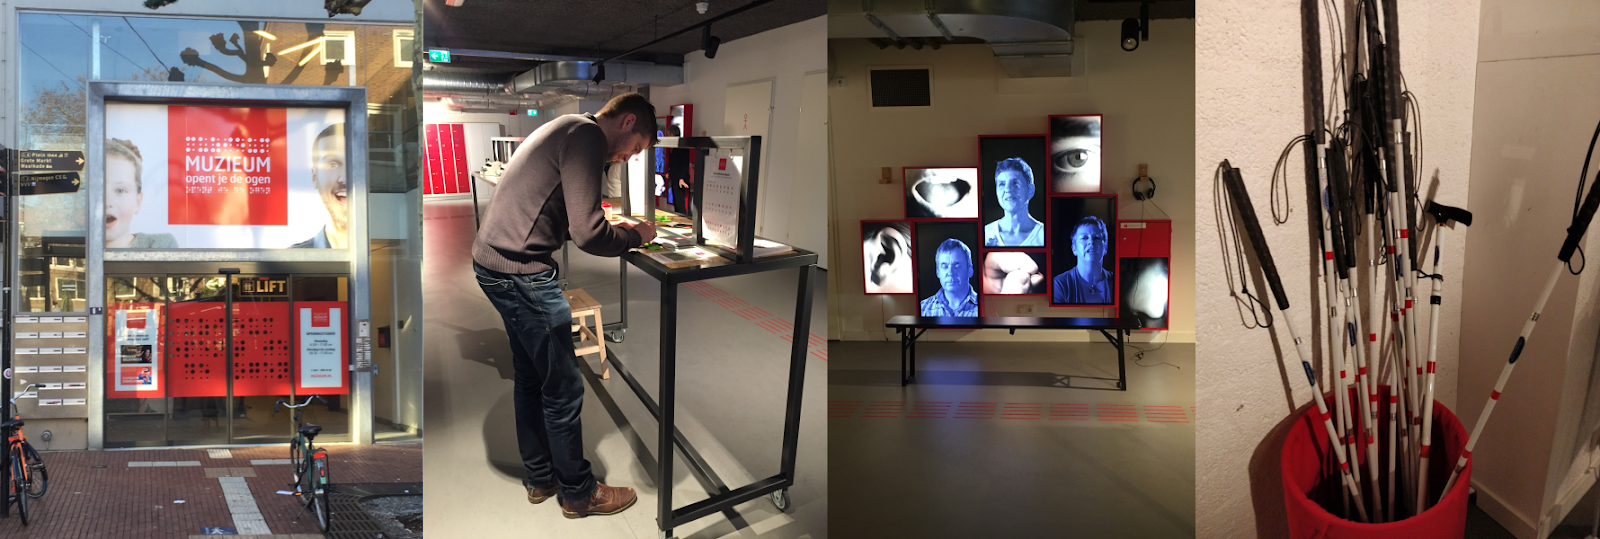 4 images from the blind experience in Nijmegen. A view from the outside. A developer trying an interactive experience. Some video screens and a bucket of white canes.